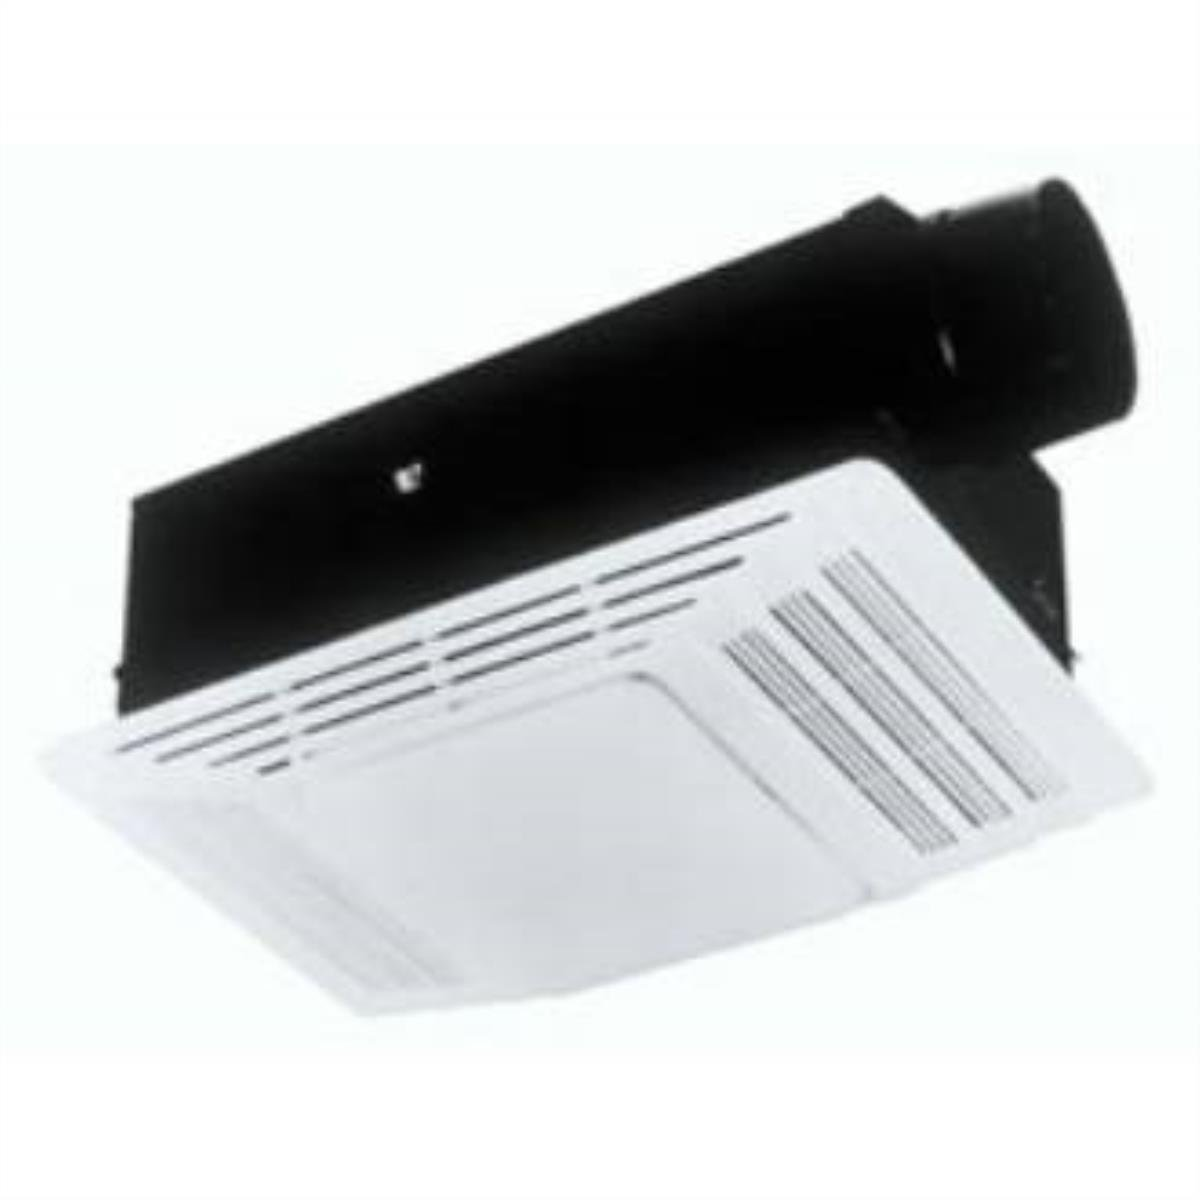 The 50 Top Fan And Ventilation Systems Basic Electrical Wiring Diagrams Heater Light For Bathroom As Well This 3 In 1 Unit Works A To Provide An Ideal System Your Is Compatible With Way Switches